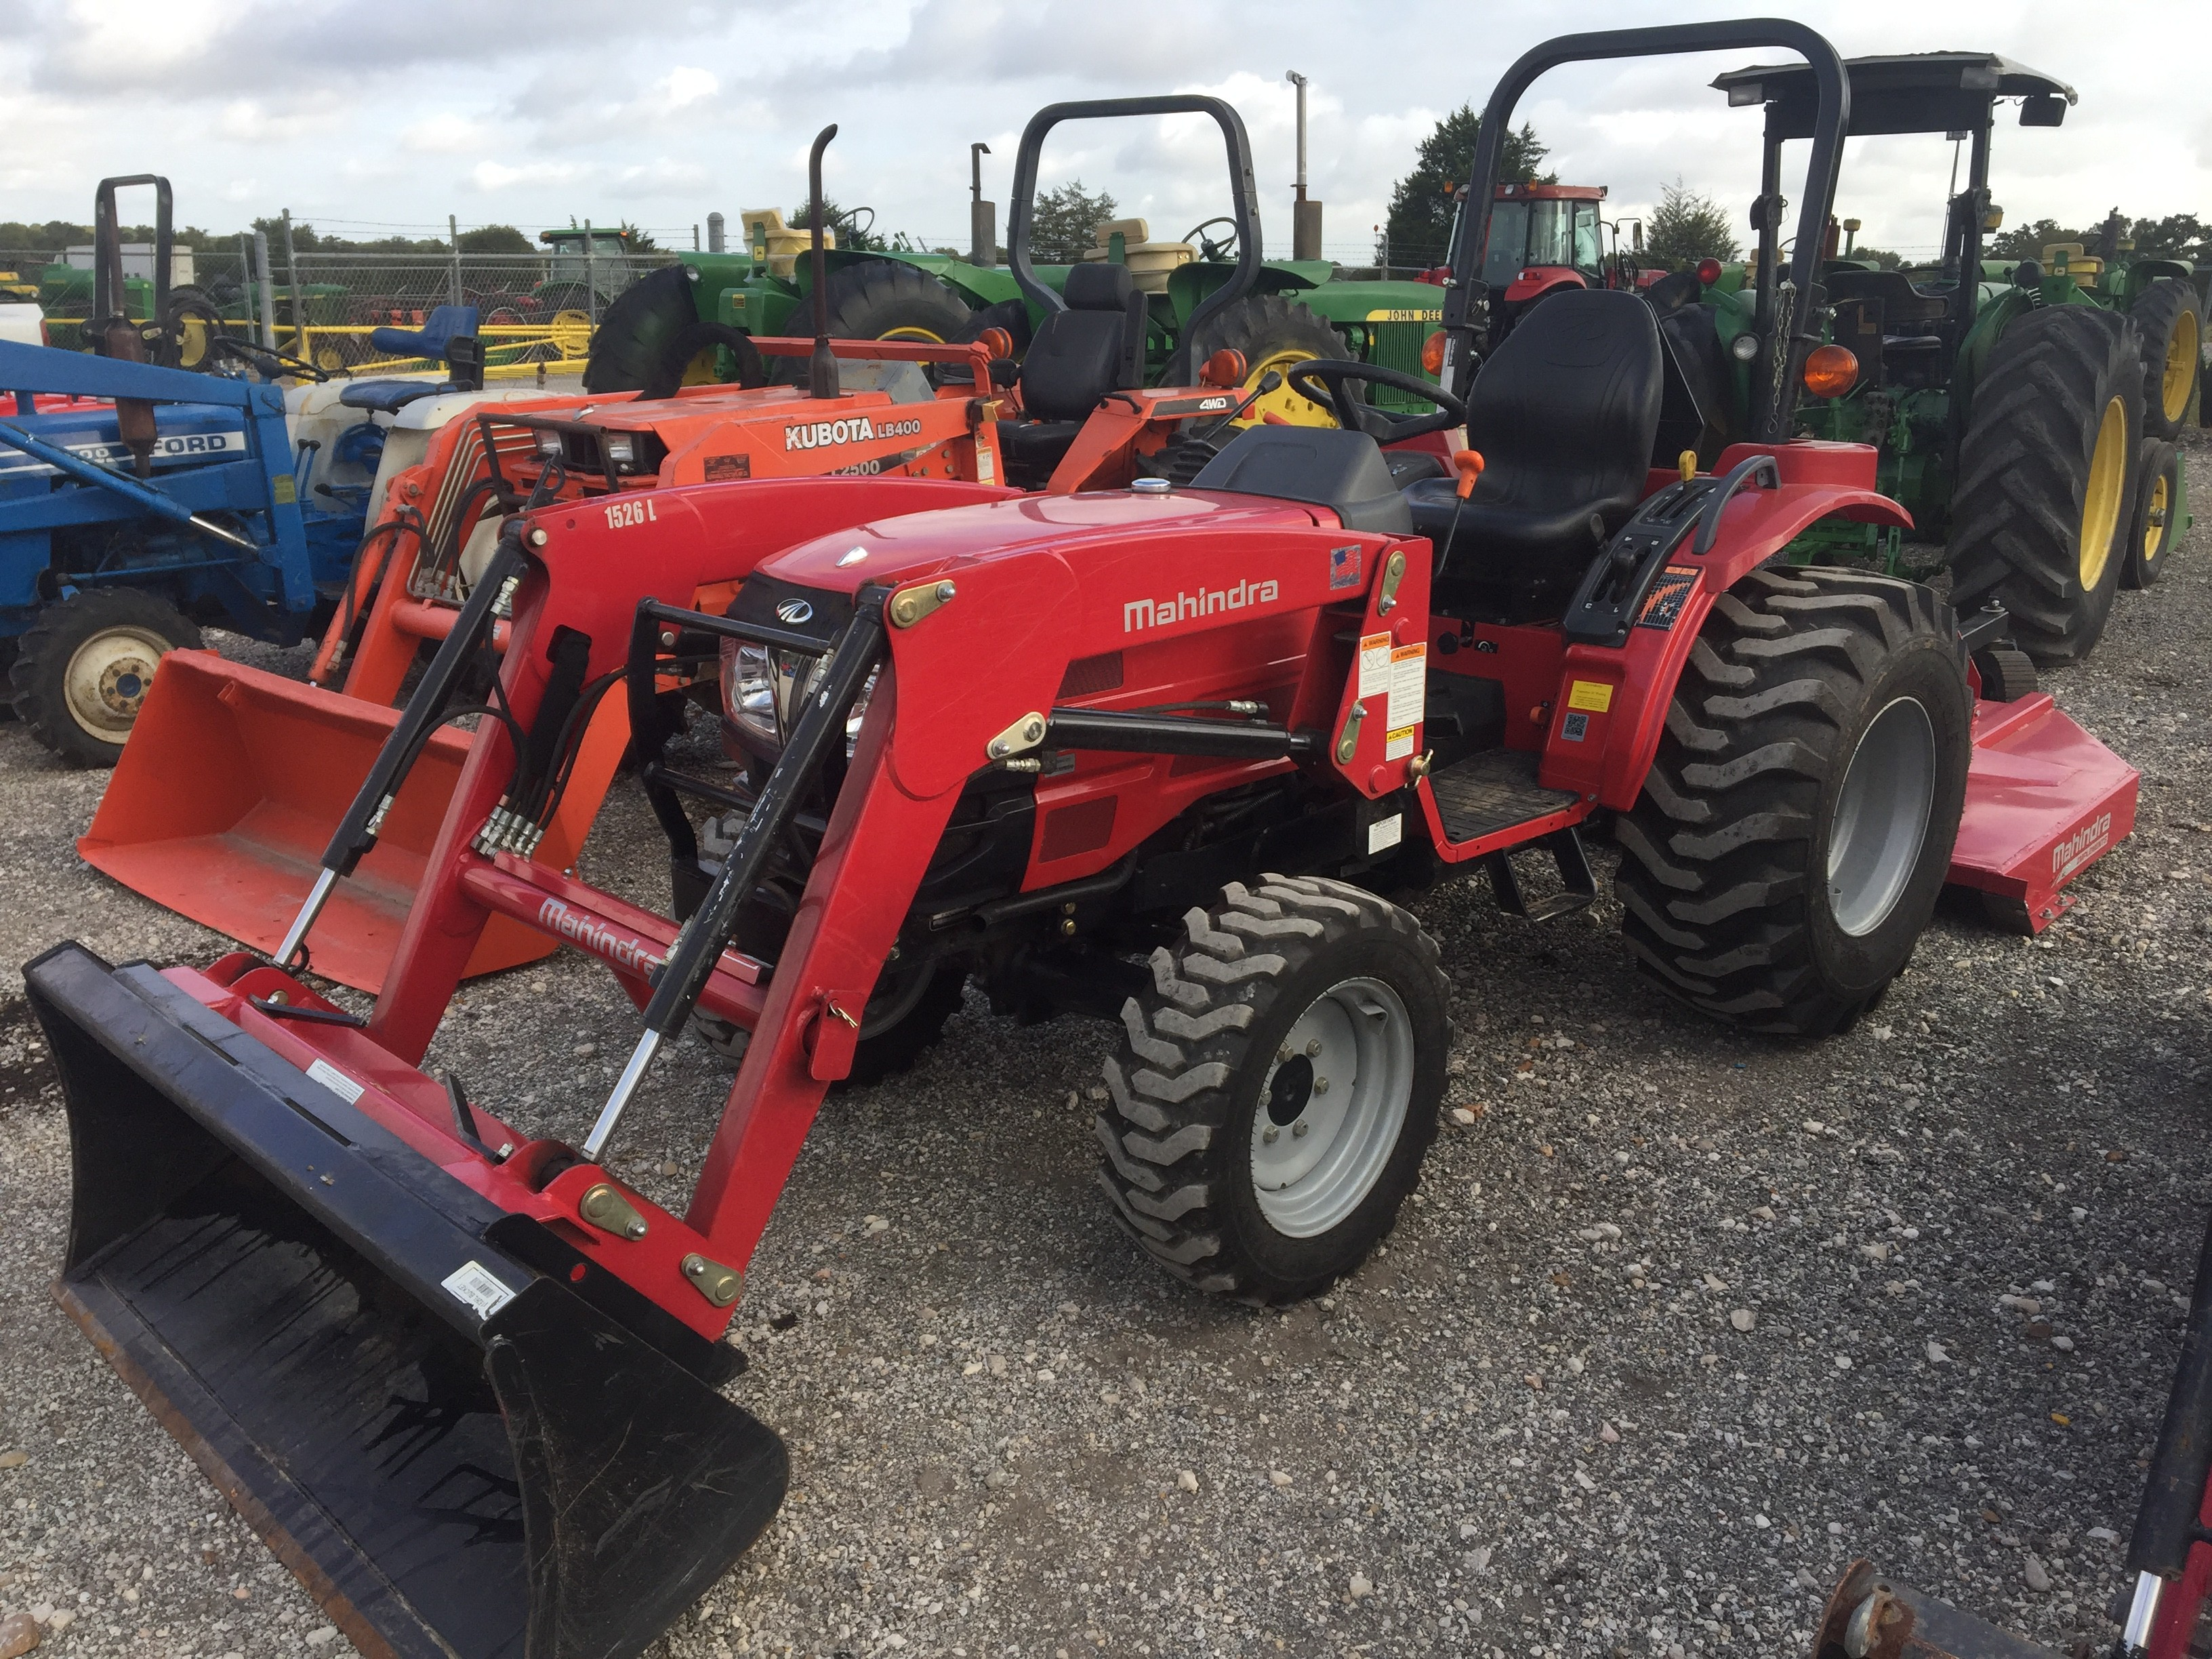 Old Used Tractors For Sale   Used Tractor For Sale In